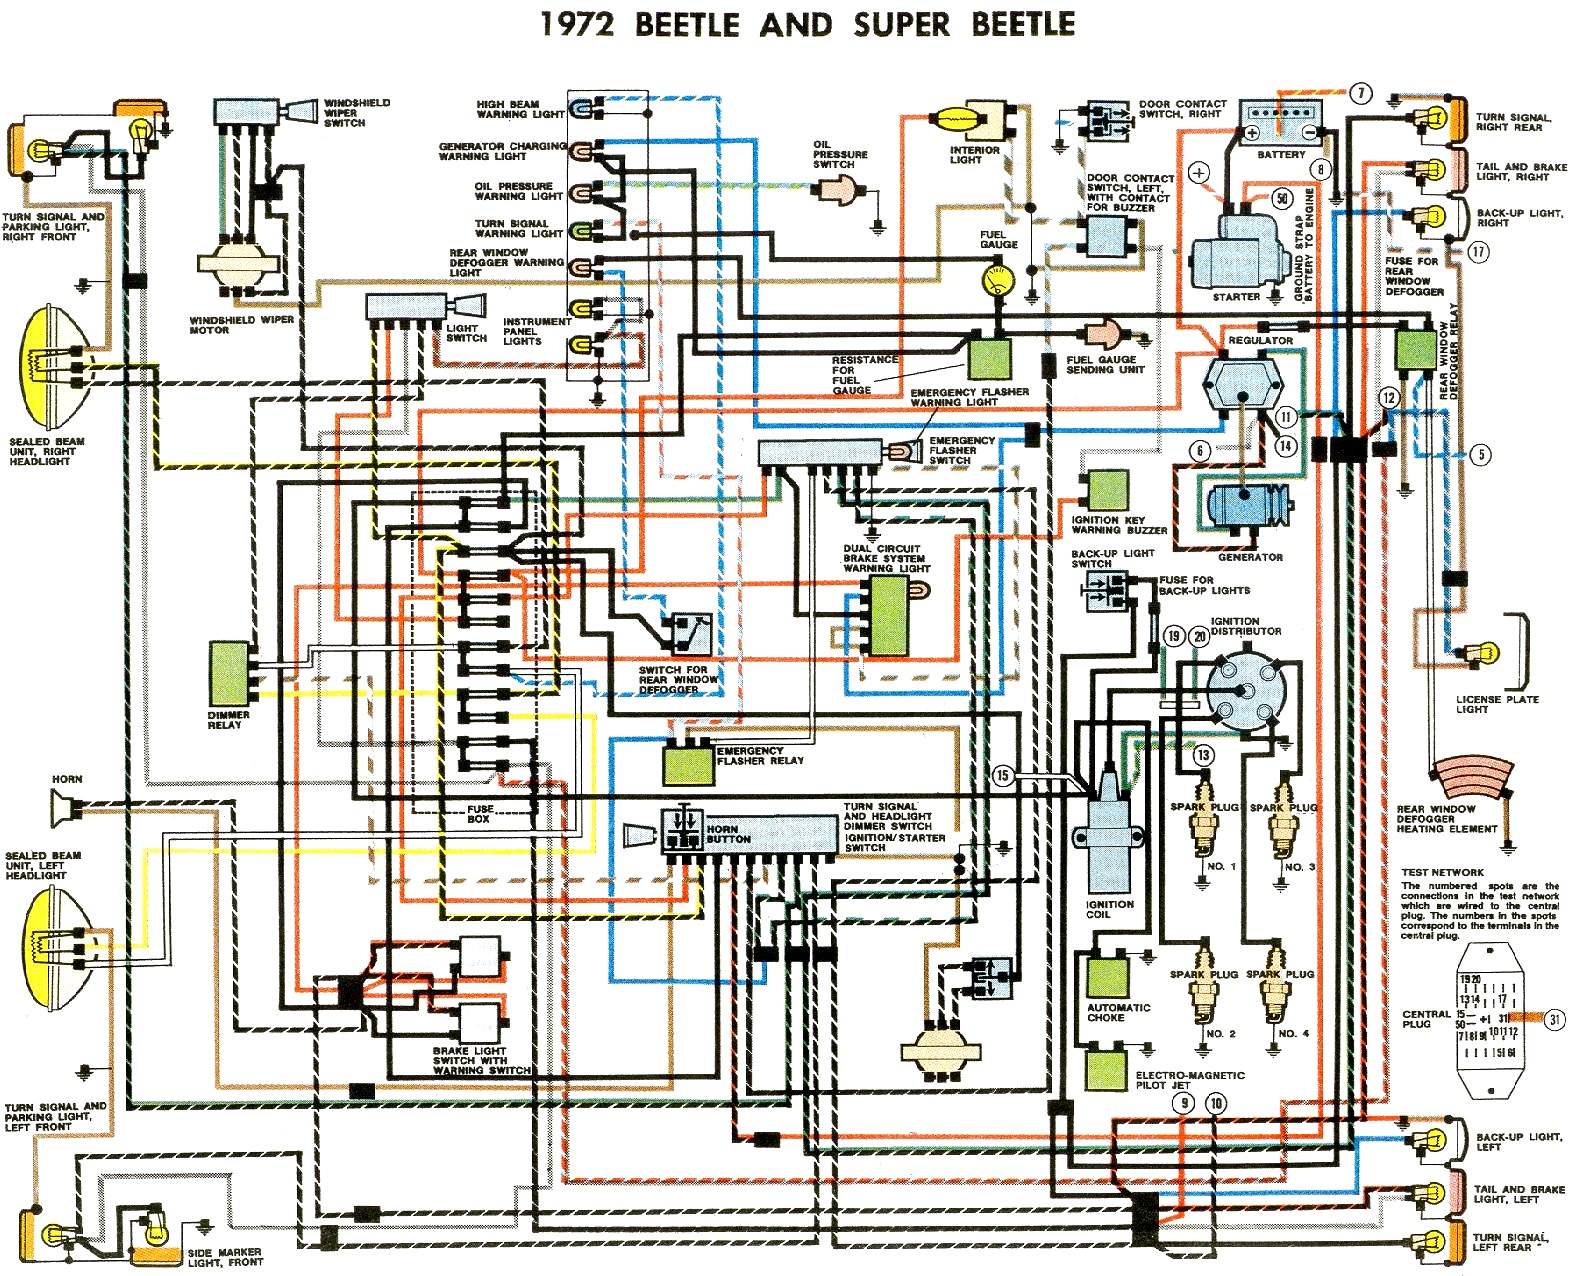 Type 1 Vw Wire Diagram | Wiring Schematic Diagram - pokesoku.co Wiring Diagram Vw Type on